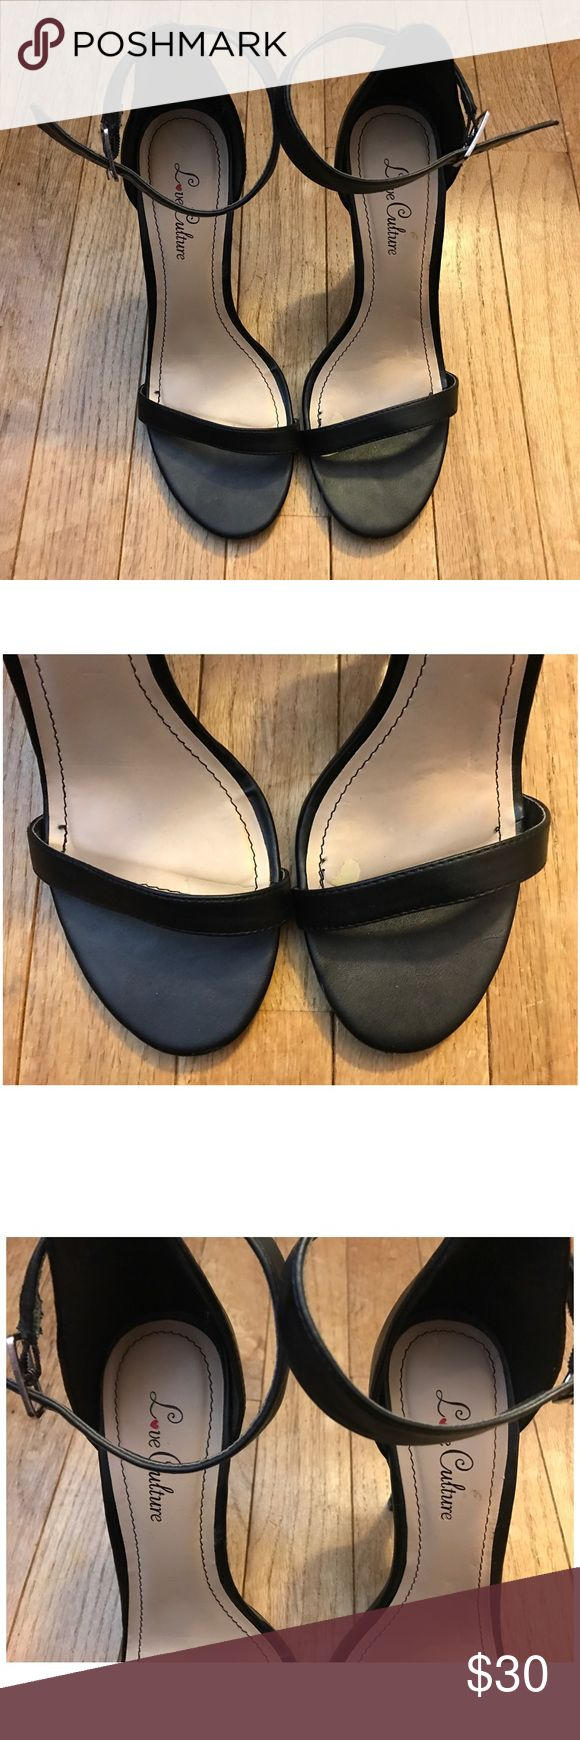 Love Culture Black Strap Heels A pair of gently used love culture basic Black strapped heels. Has so smudge marks but in very good condition. Really only wore them a few times.  🚫No Trades🚫🚫Please No Lowballing🚫  I do not negotiate pricing in the comments. Please submit a reasonable offer by the offer button. Thank you 😊 Love Culture Shoes Heels